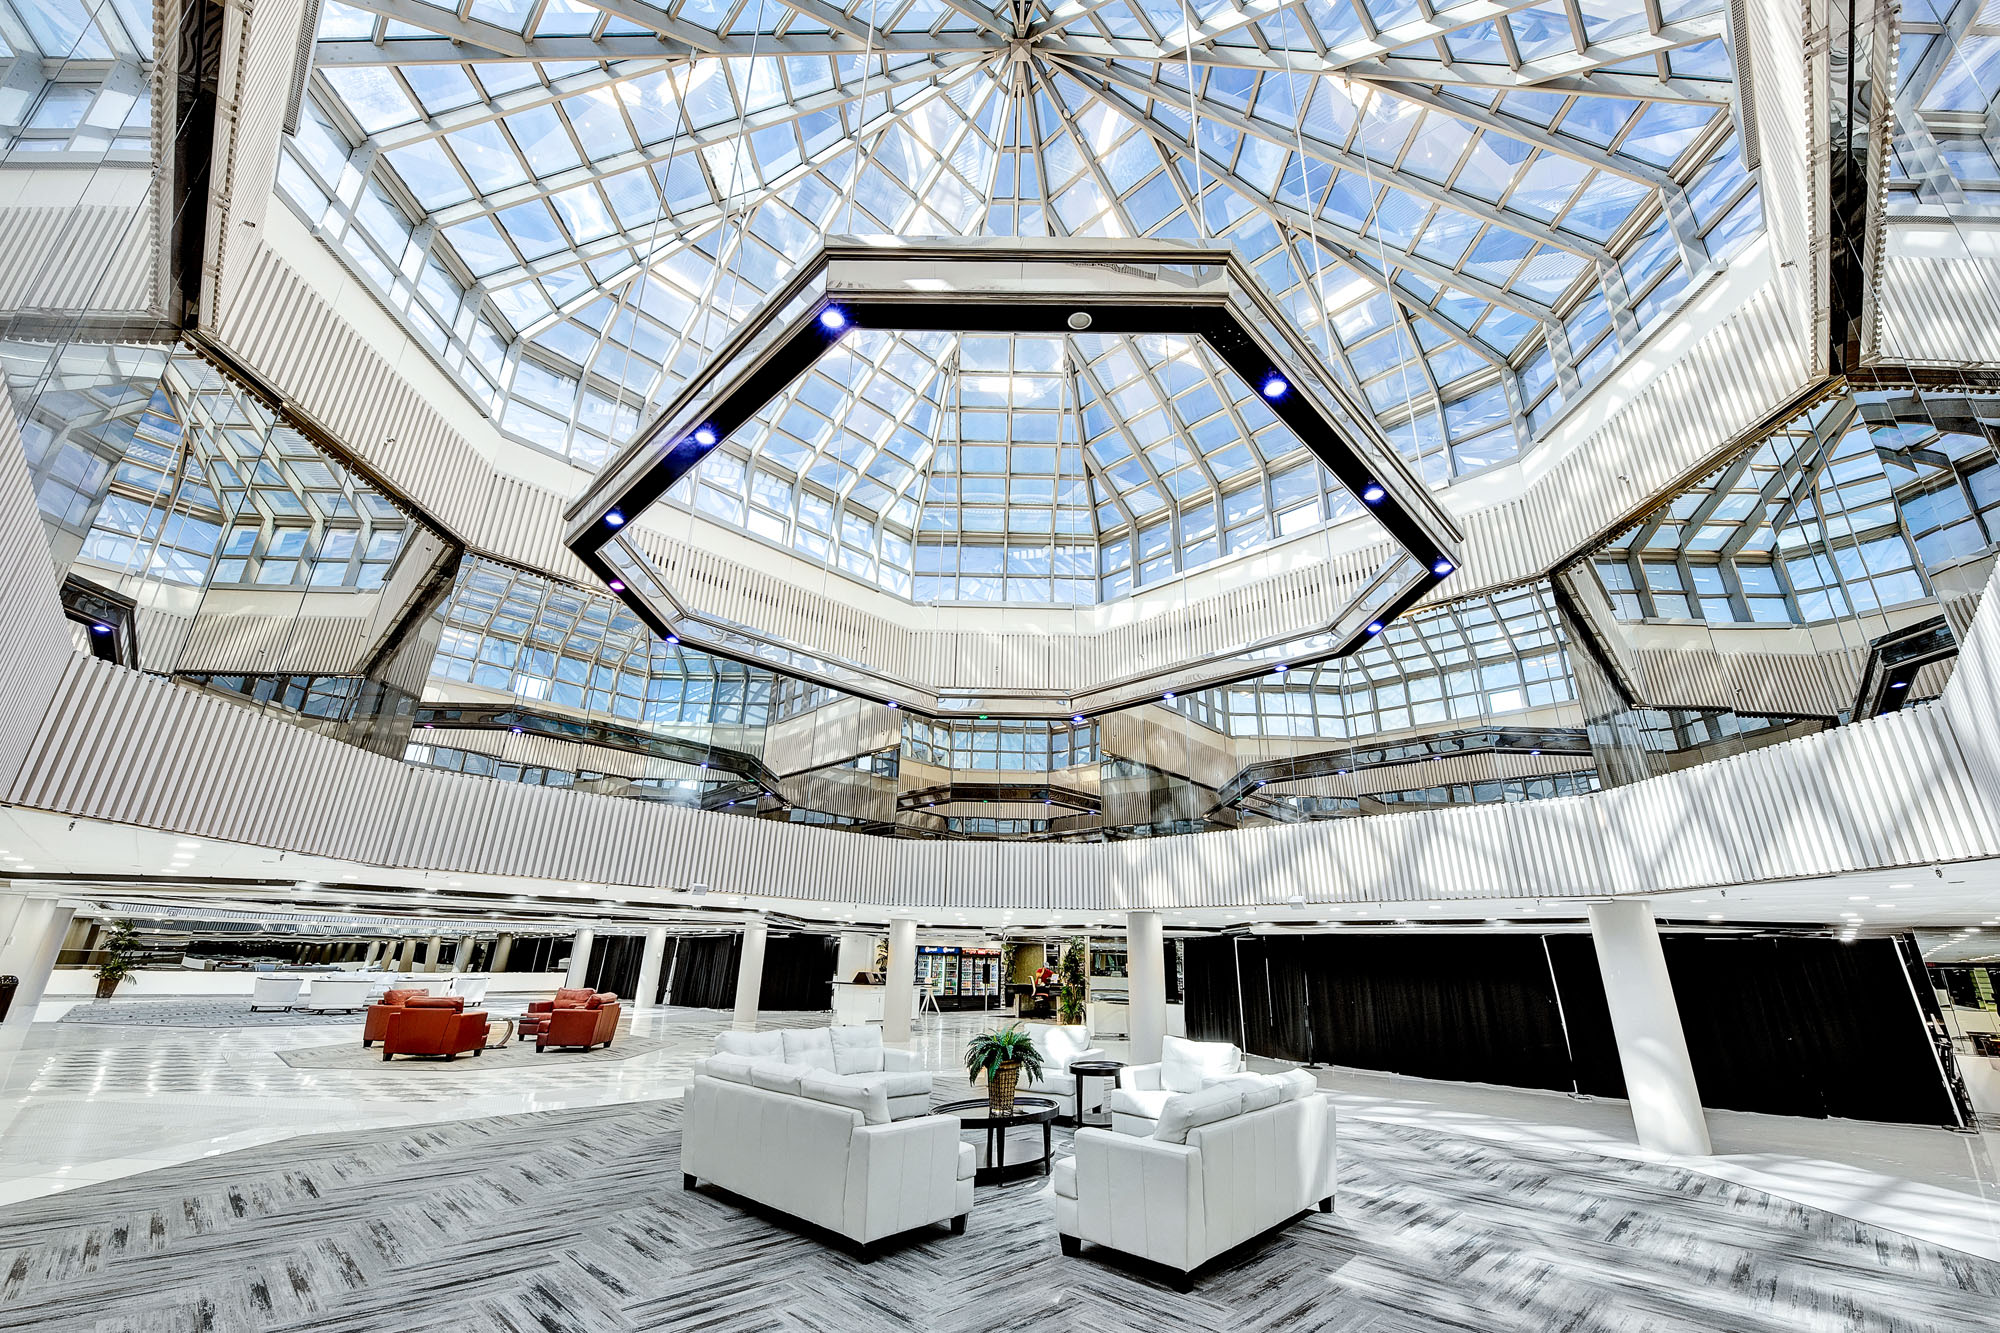 Skylit interior conference space